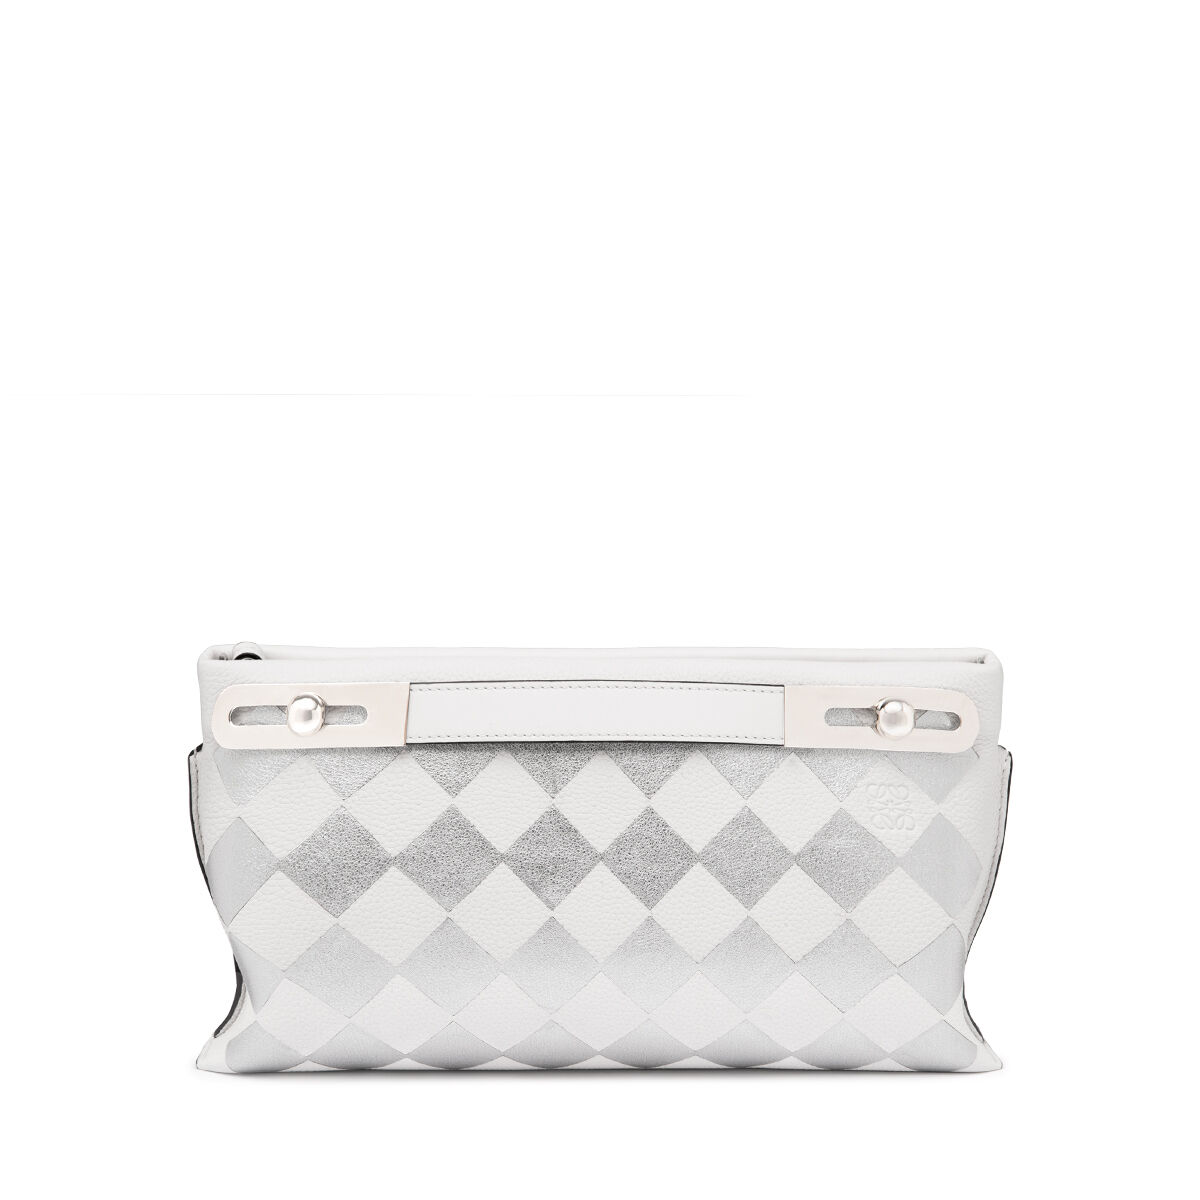 LOEWE Bolso Missy Checks Pequeño Blanco/Plata all